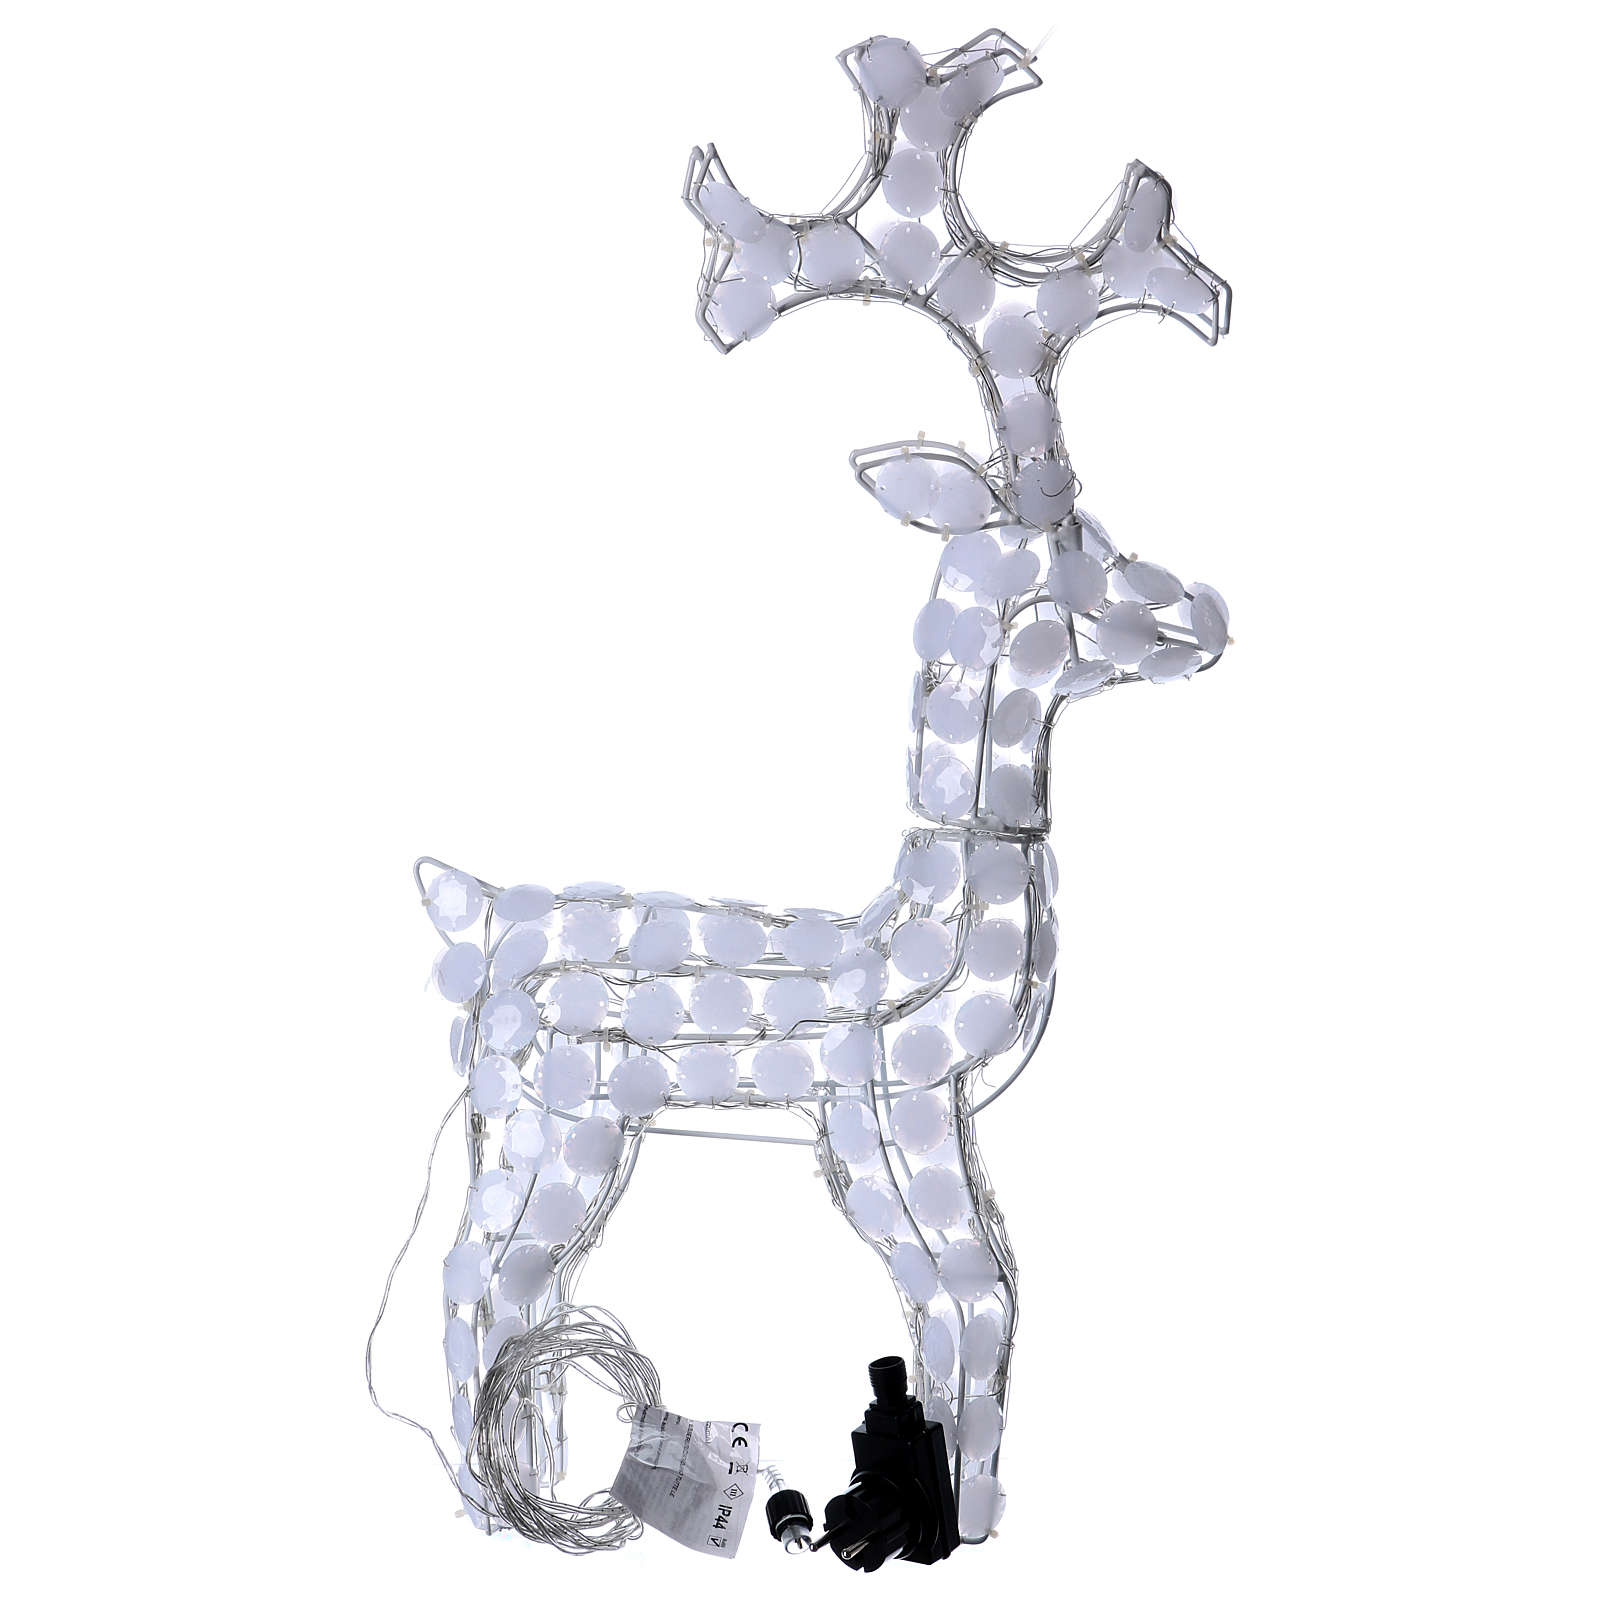 Lighted Reindeer 80 LED ice white h 66 cm indoor outdoor use 3